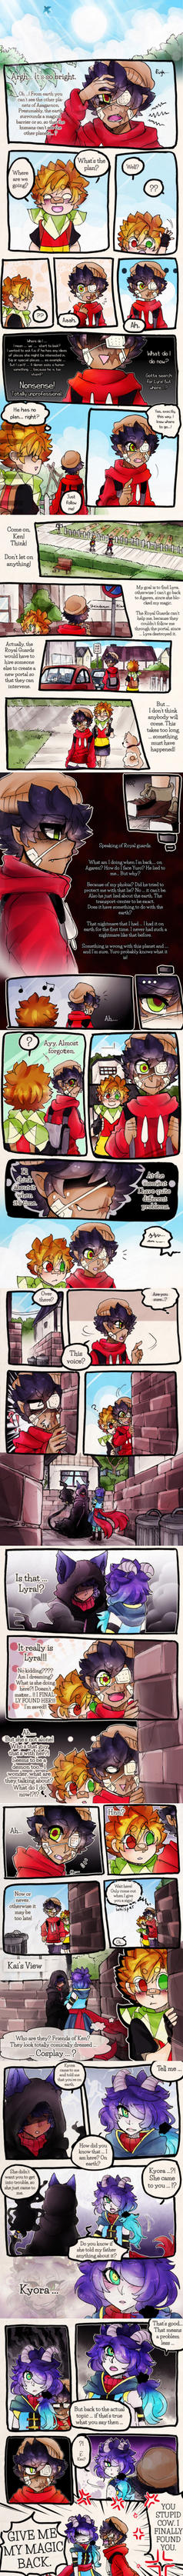 [Aodwaej] Chapter 3 Page 21-30 by Nadi-Chan